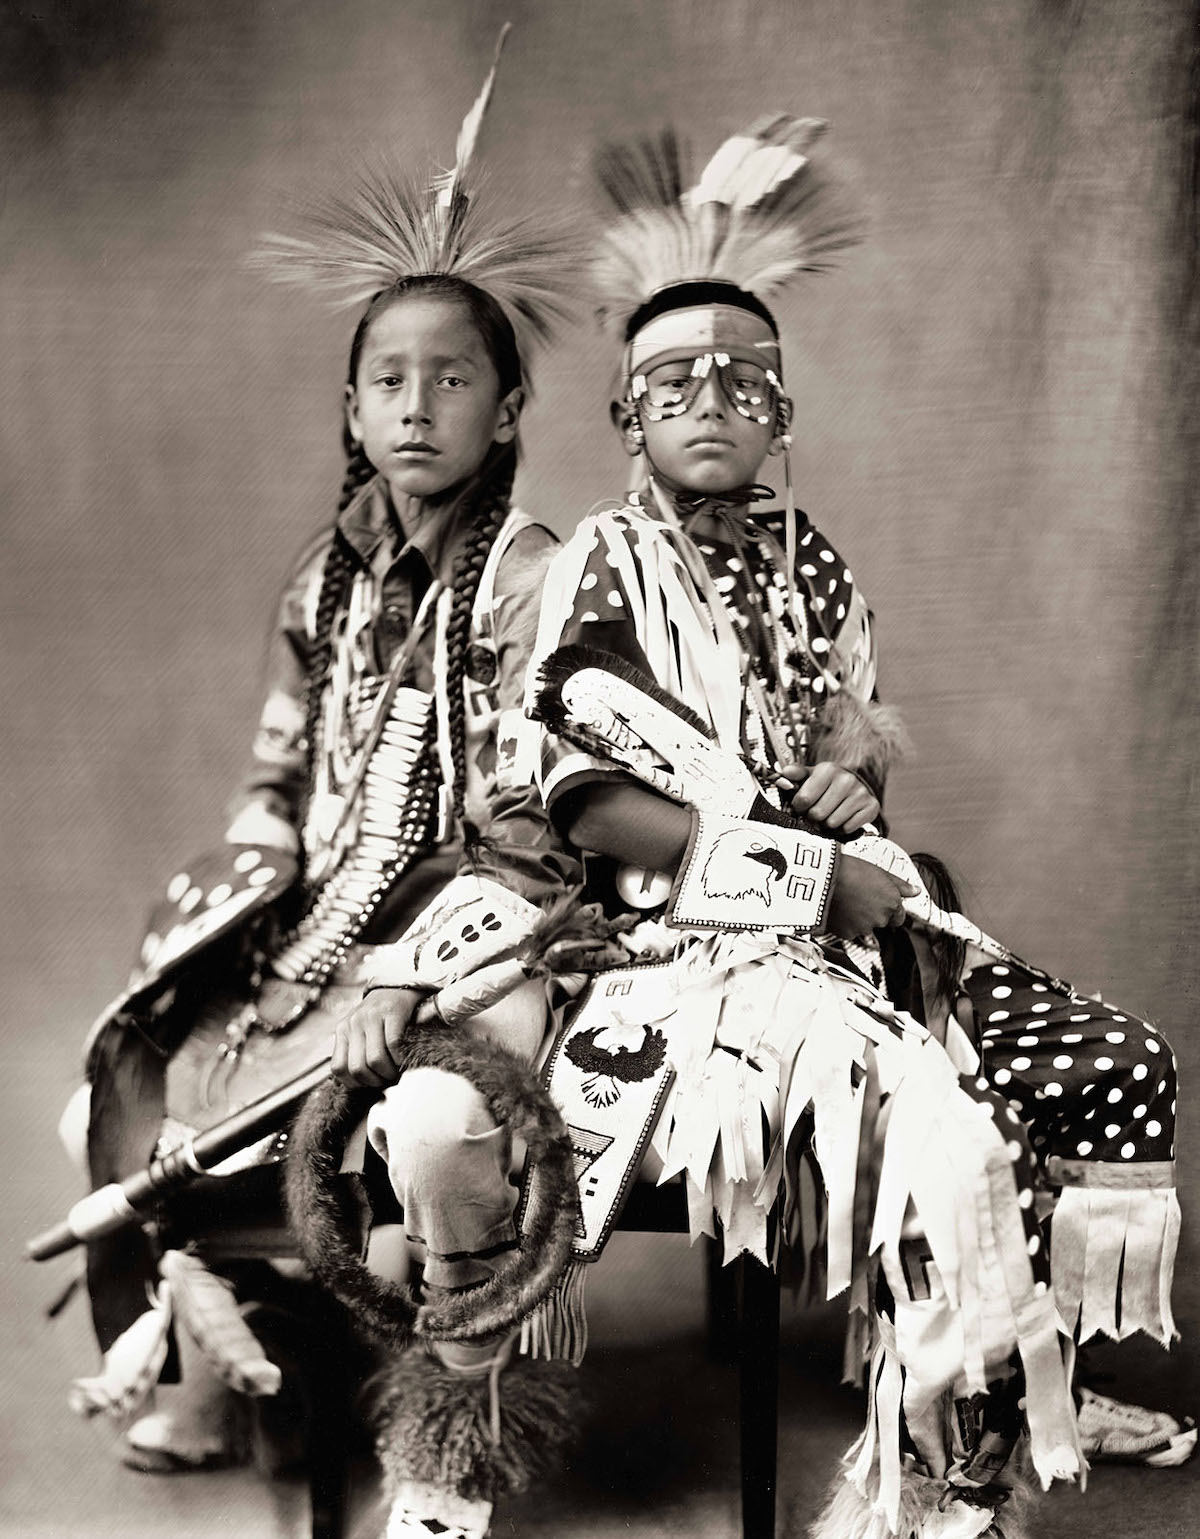 Native American Wet Plate Photography Portraits by Shane Balkowitsch